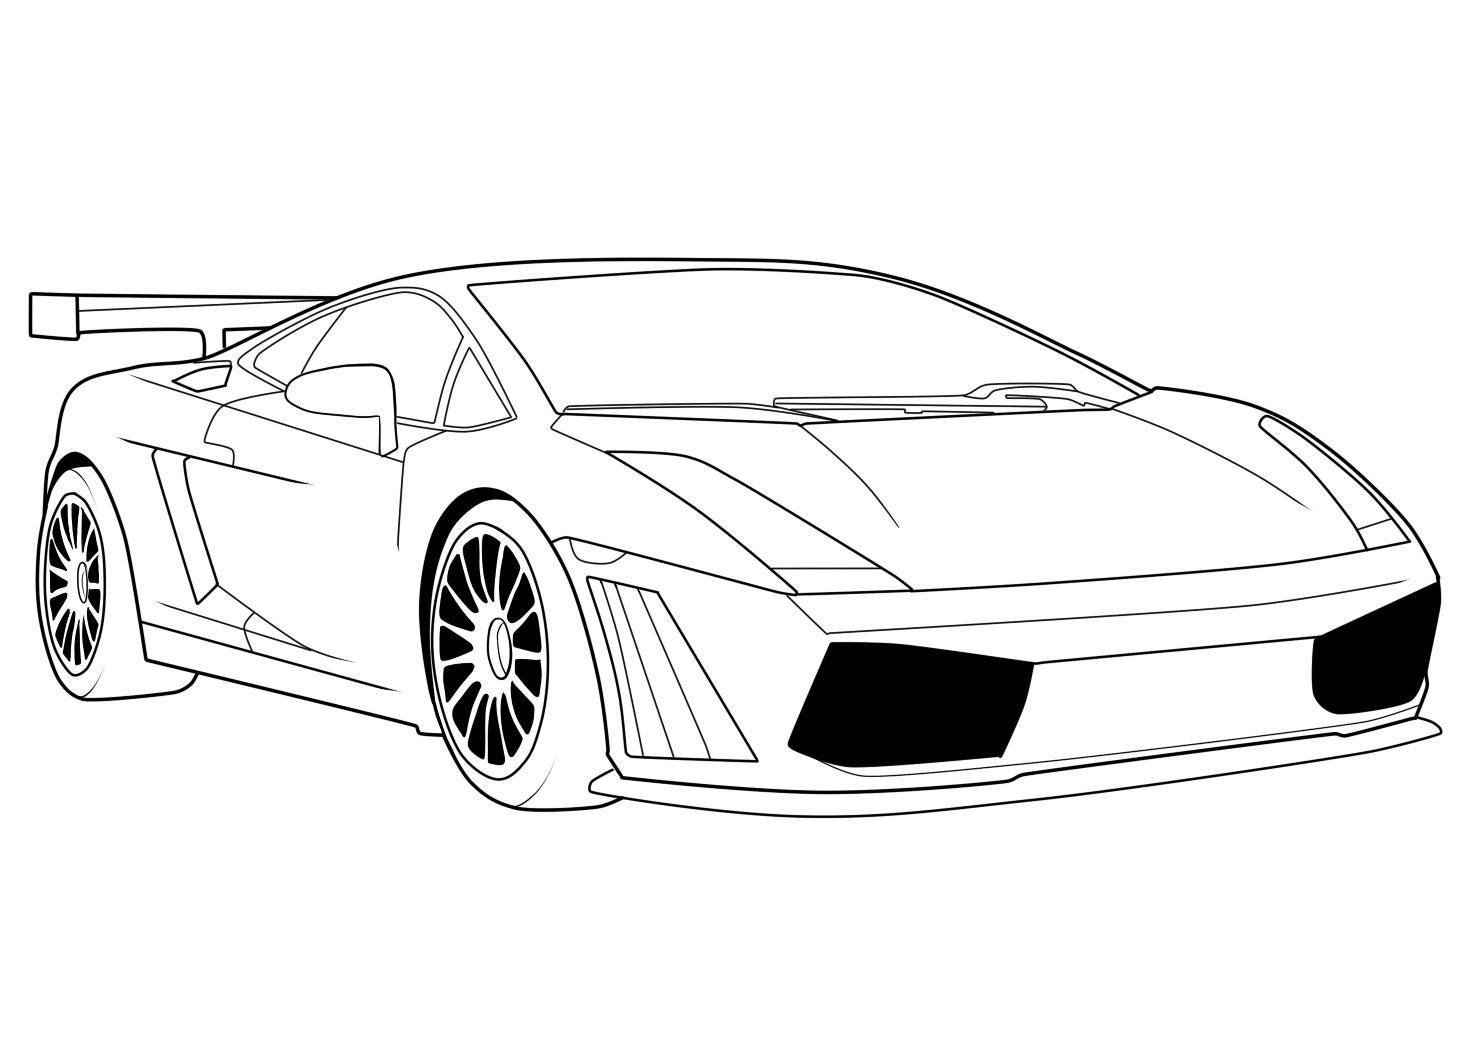 coloring pages of vehicles - free printable lamborghini coloring pages for kids